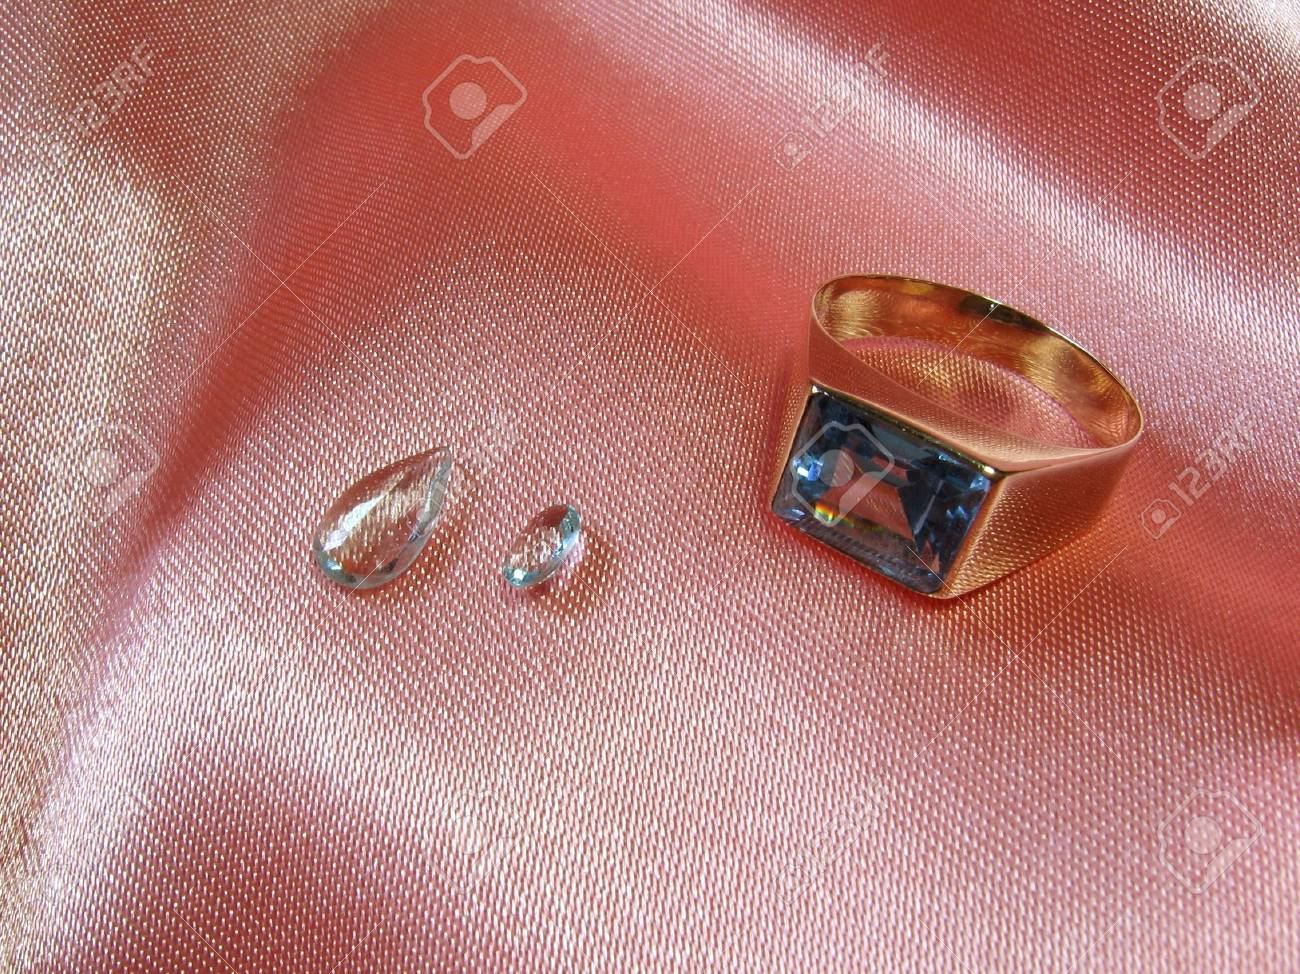 An Aquamarine Gold Ring With Two Gems On Pink Satin. Stock Photo ...